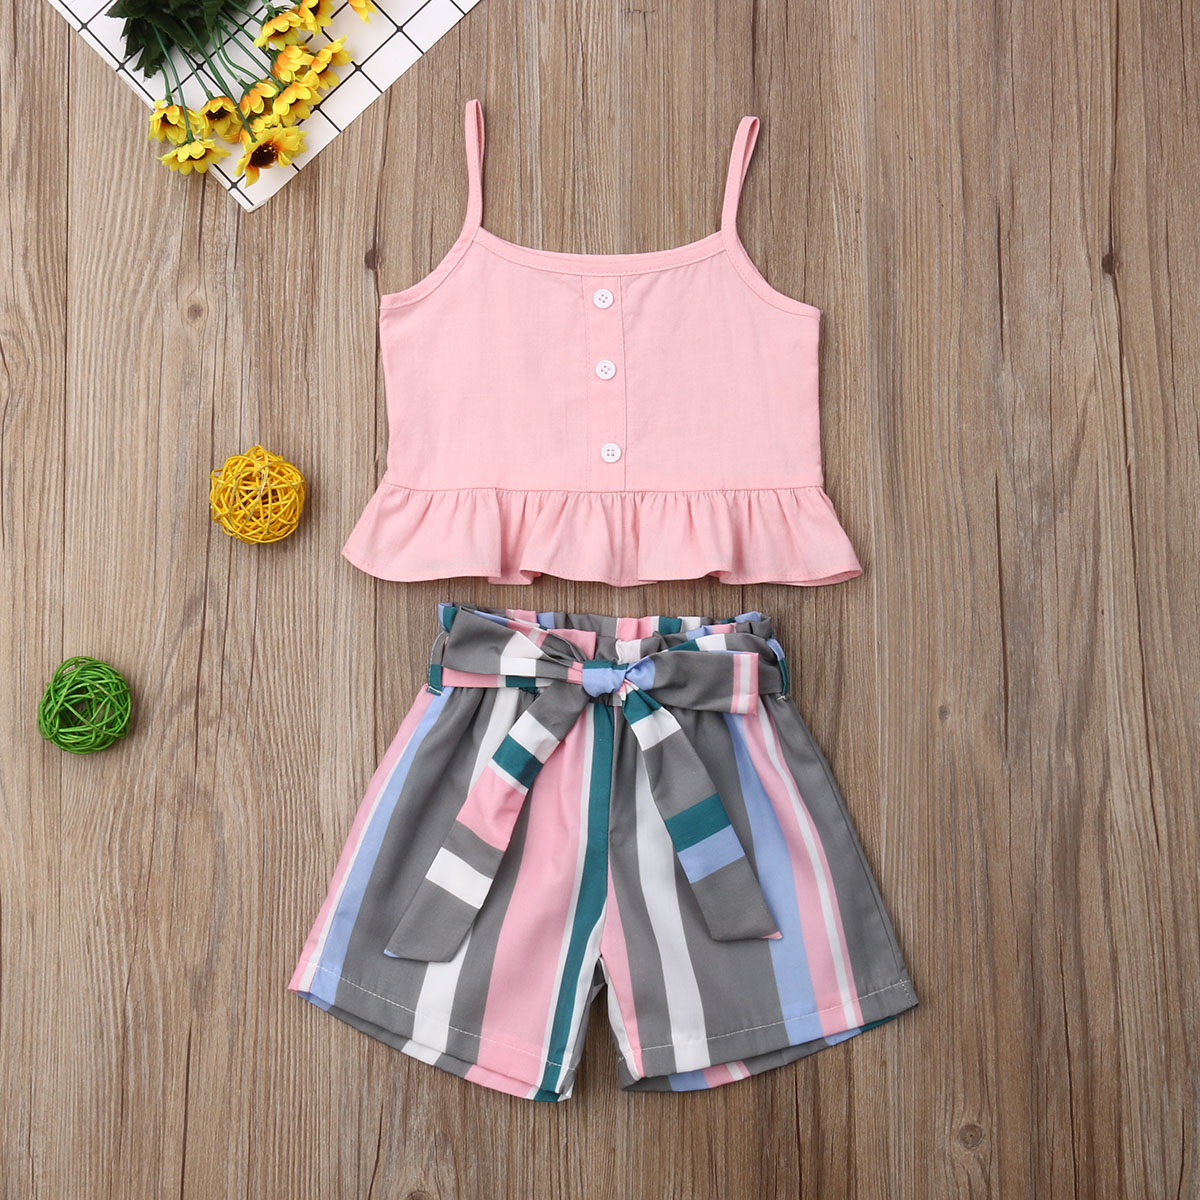 Toddler Kids Baby Girls Clothes Pink Crop Tops+Stripe Shorts 2pcs Outfits Set